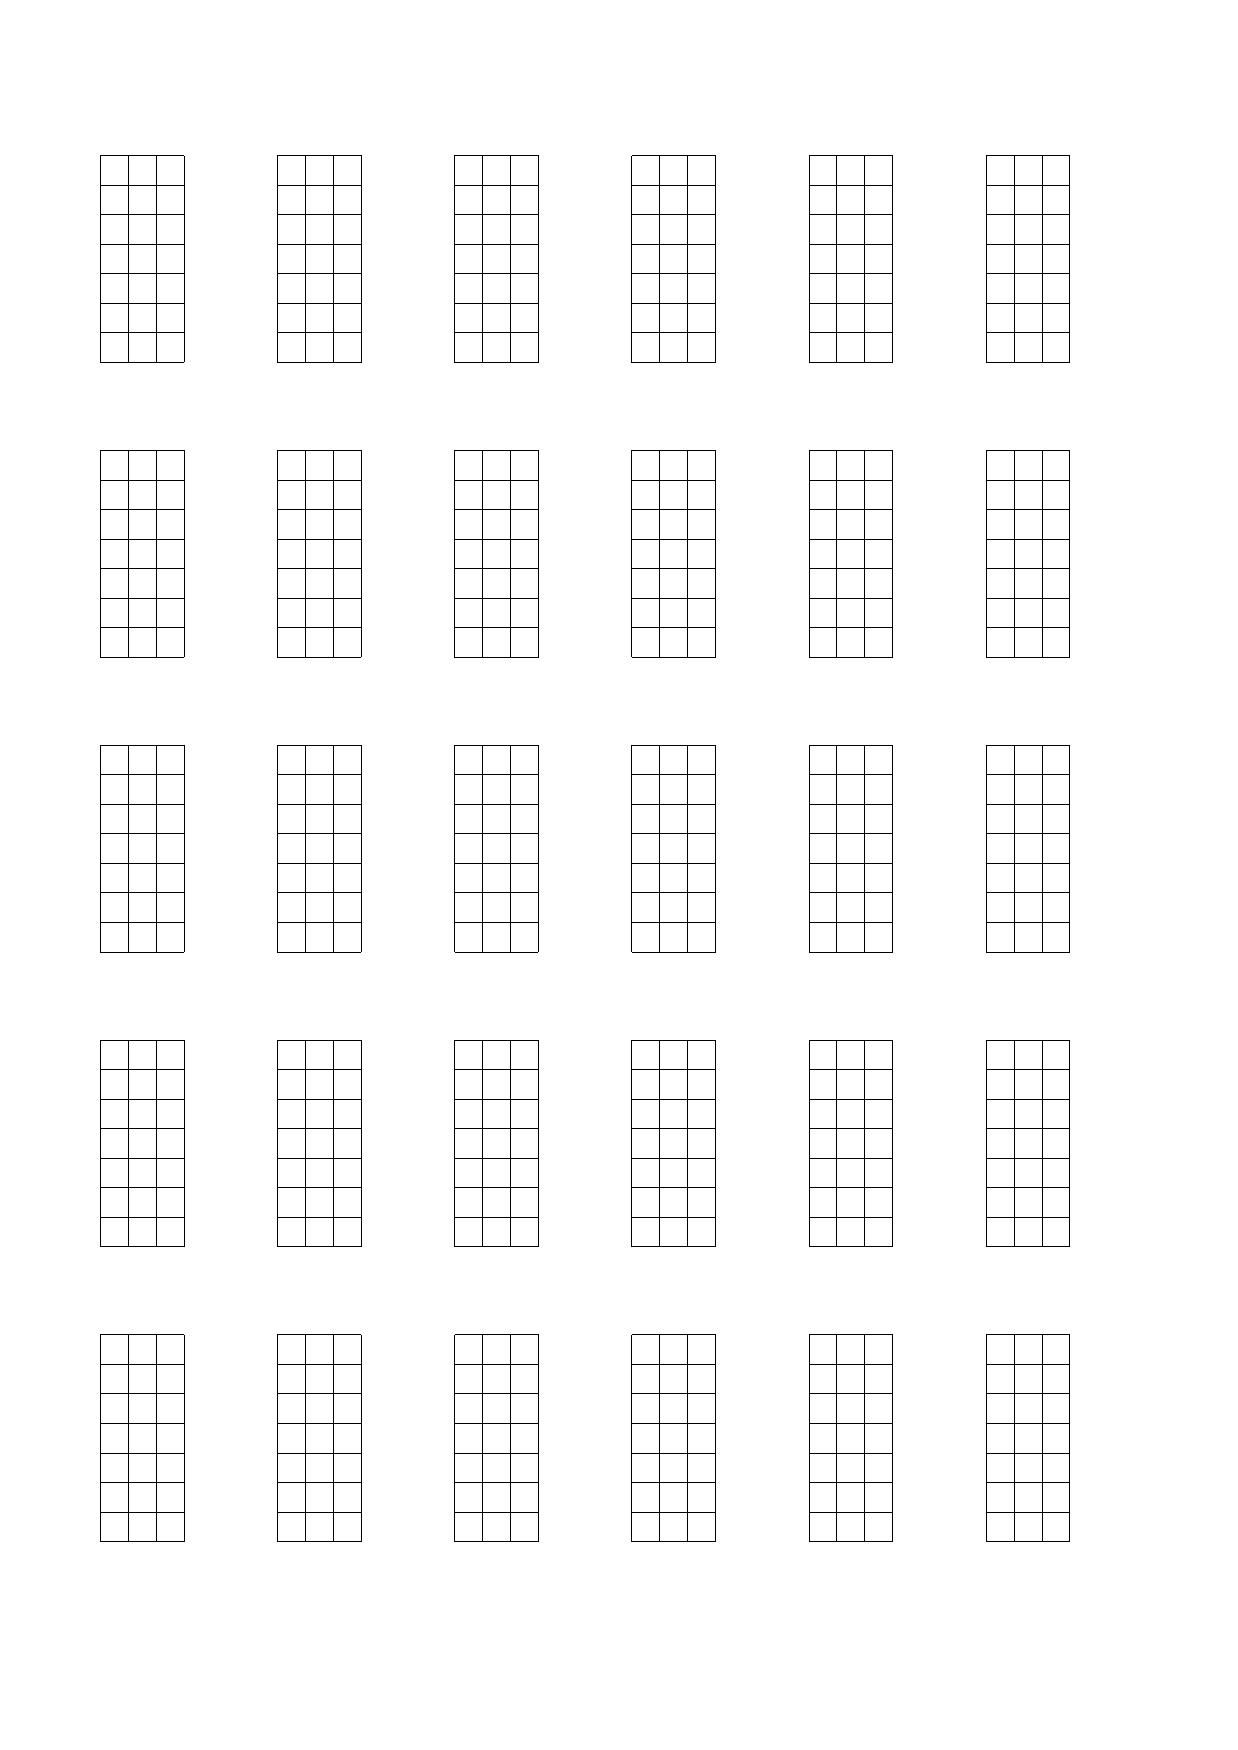 Mandolin chords sheet. Print it out. You may find it